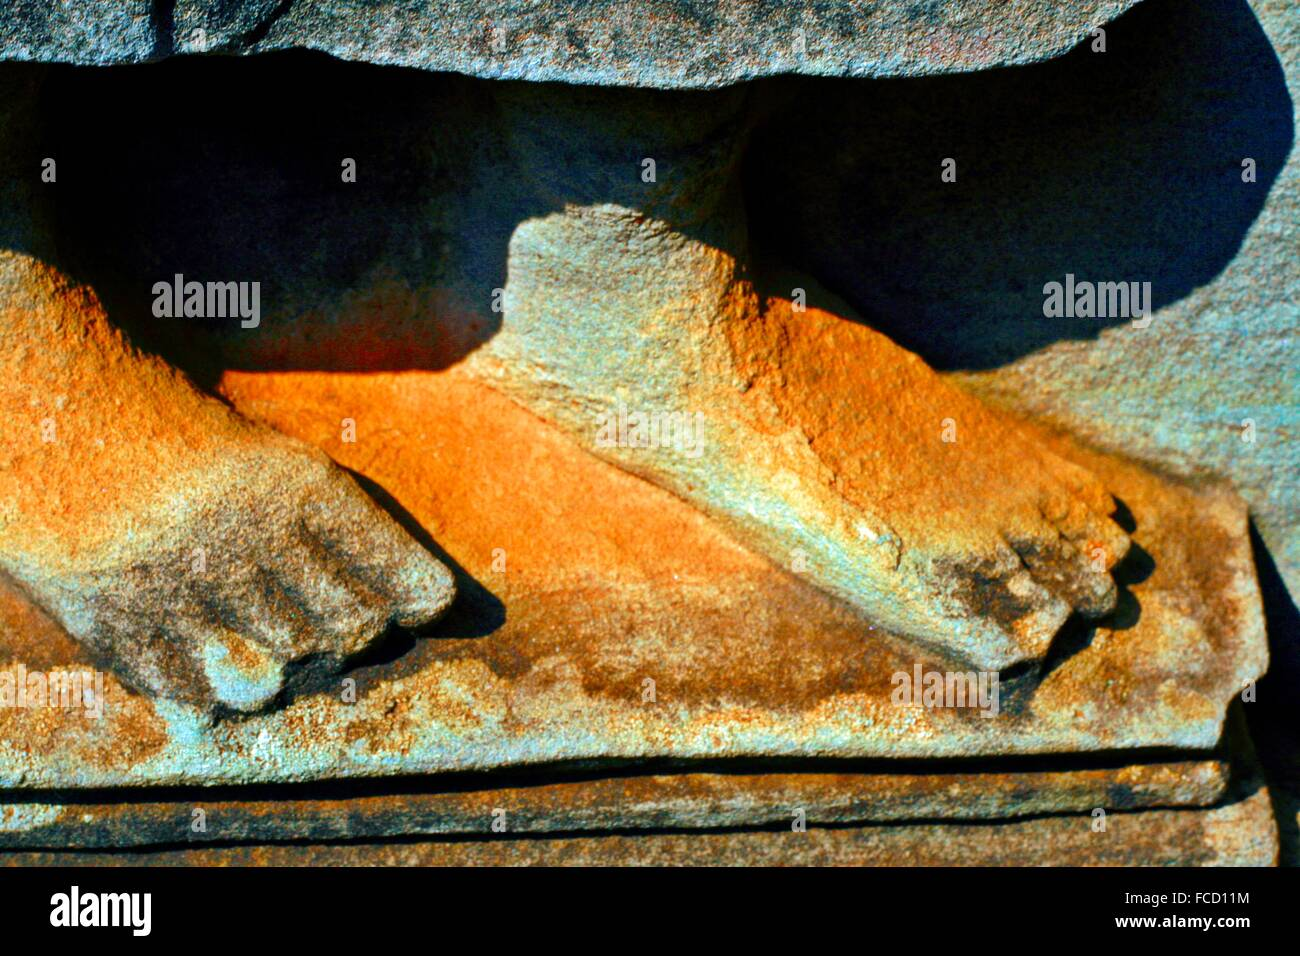 Close-Up Of Human Feet Made From Stone - Stock Image